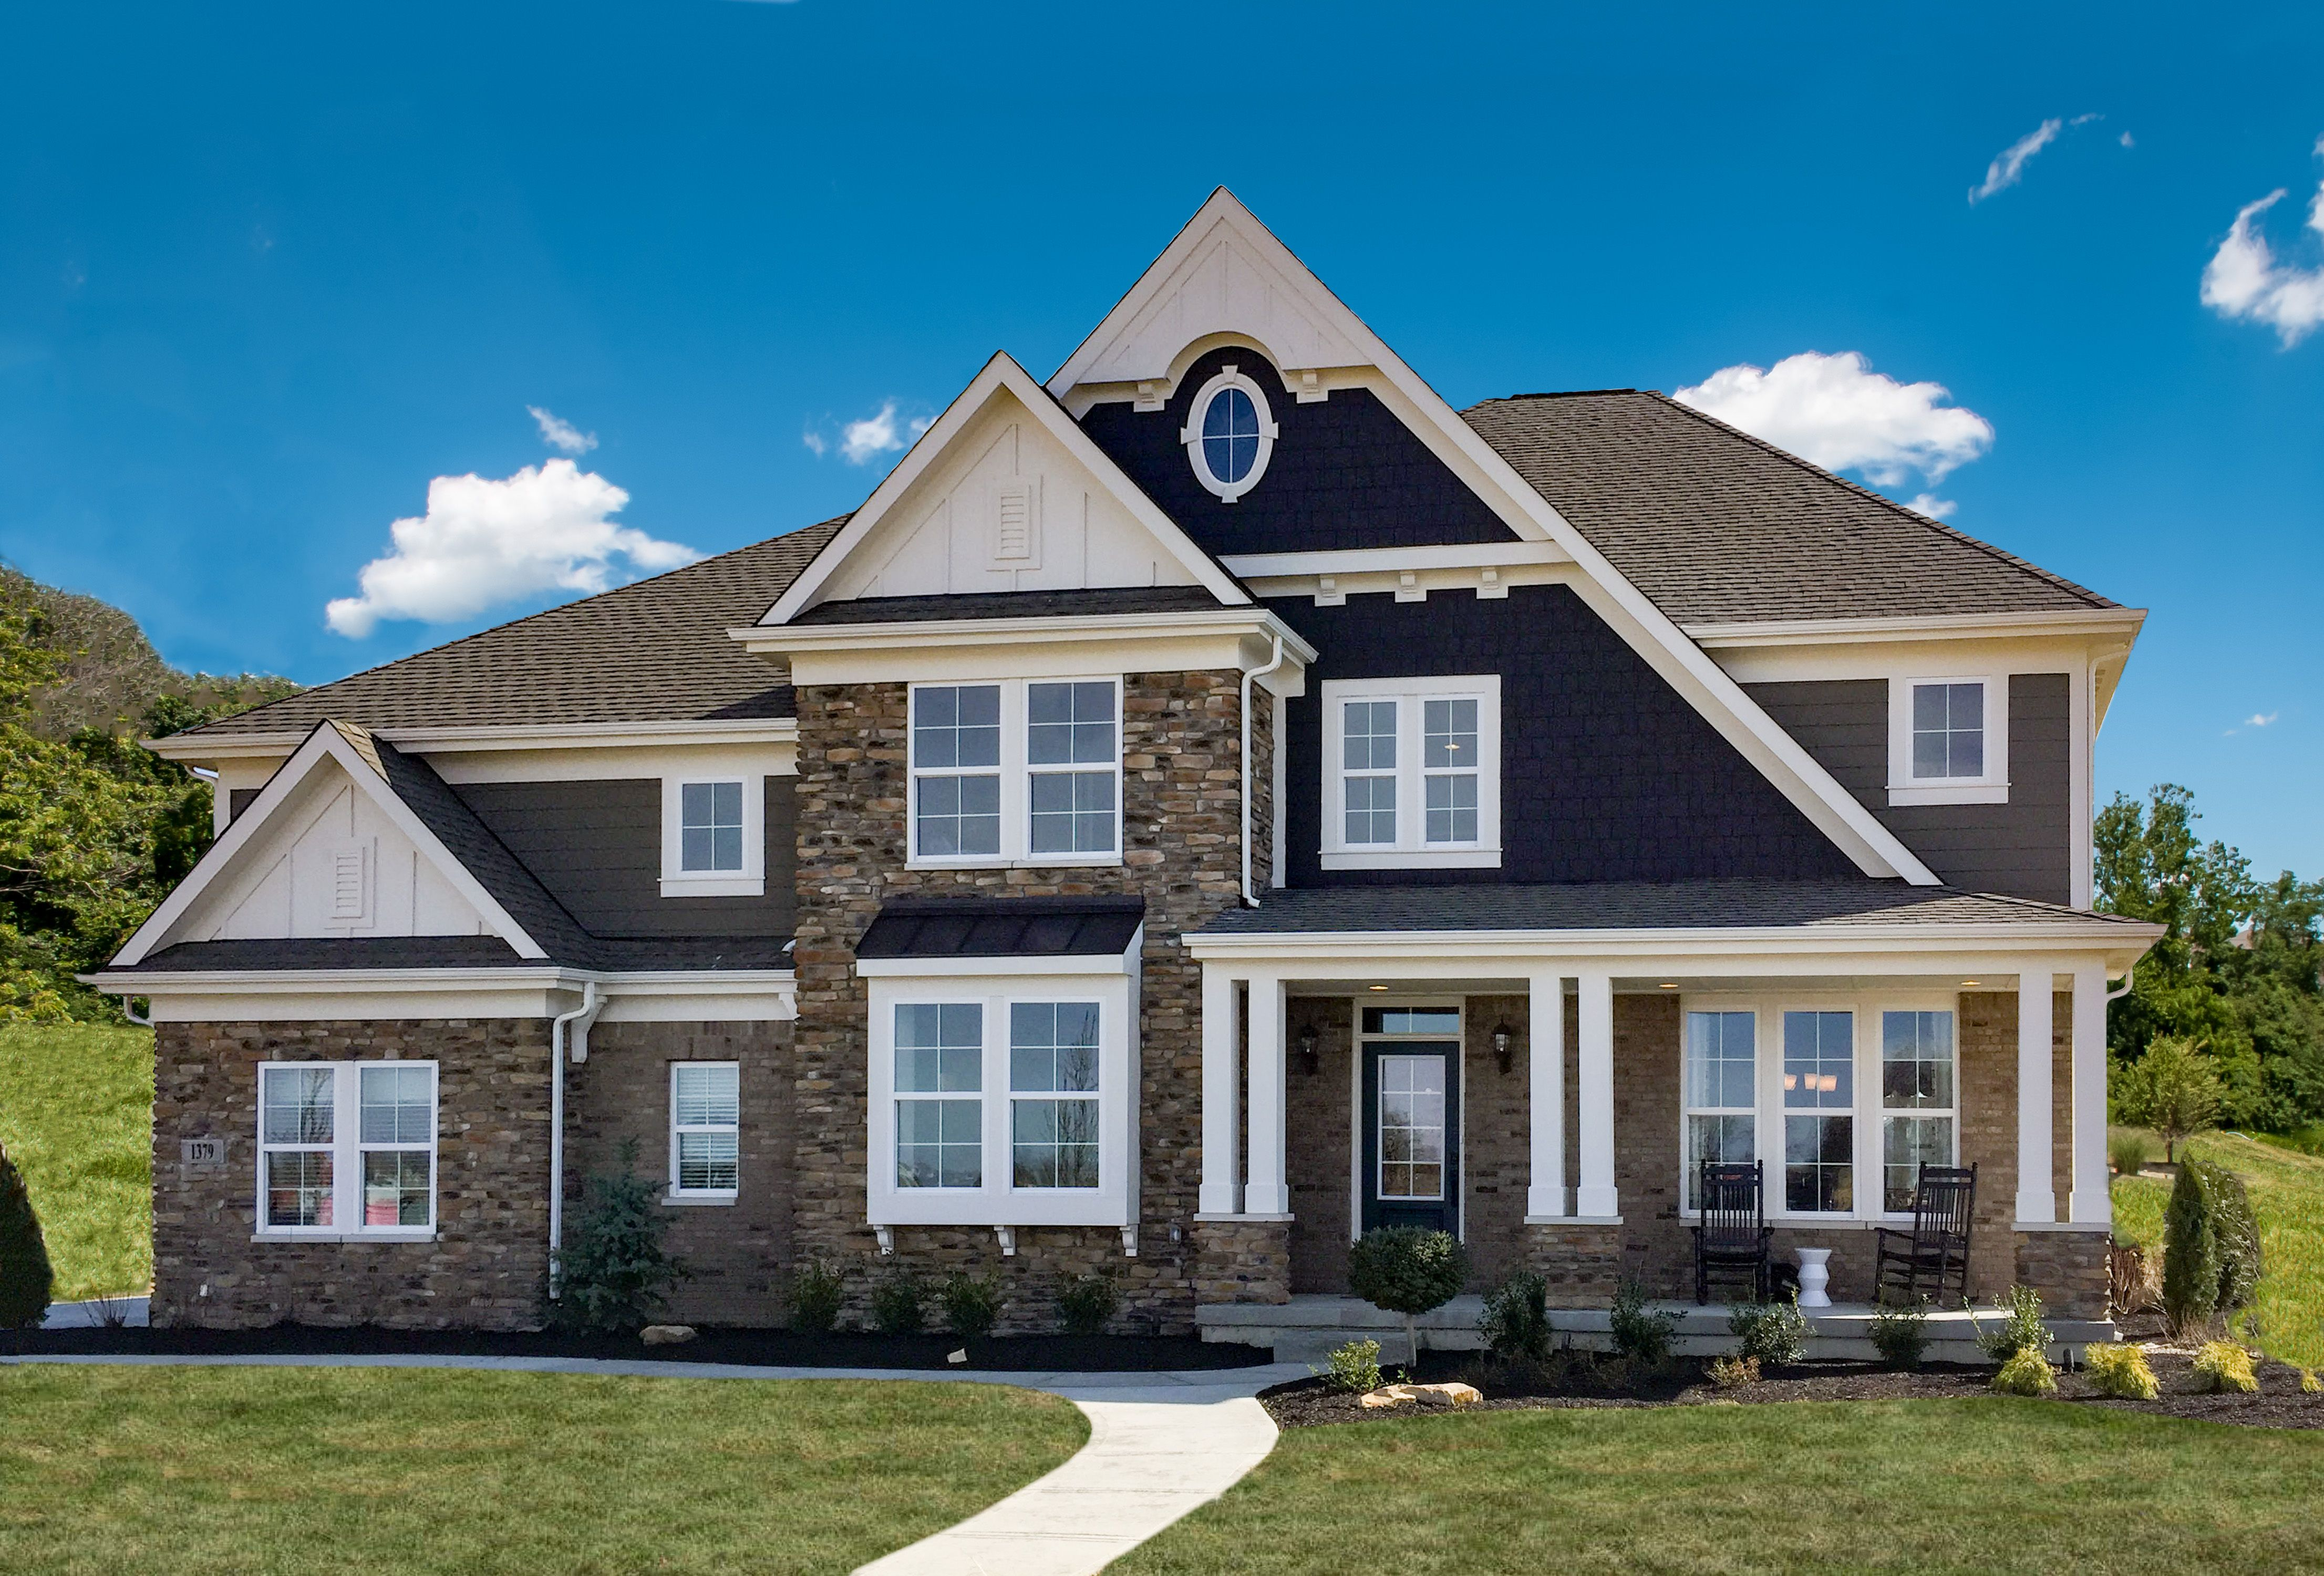 New Homes in Union KY at Triple Crown Equestrian and Winner s Circle Park